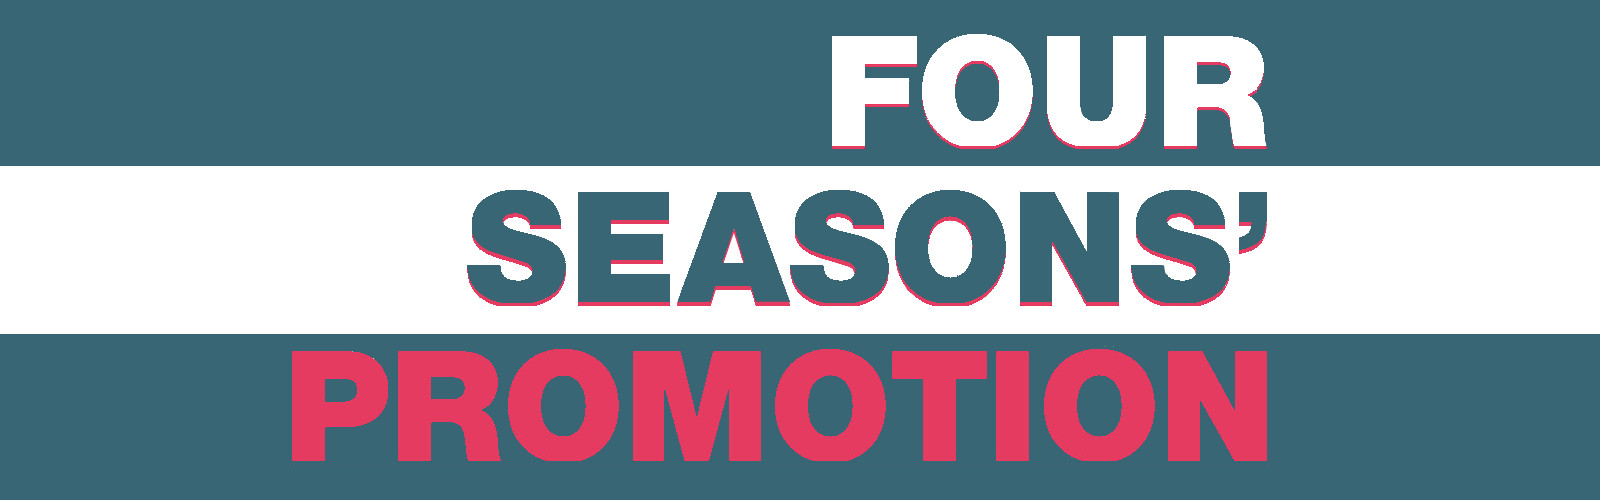 Four Seasons' Promotion - Gervasoni